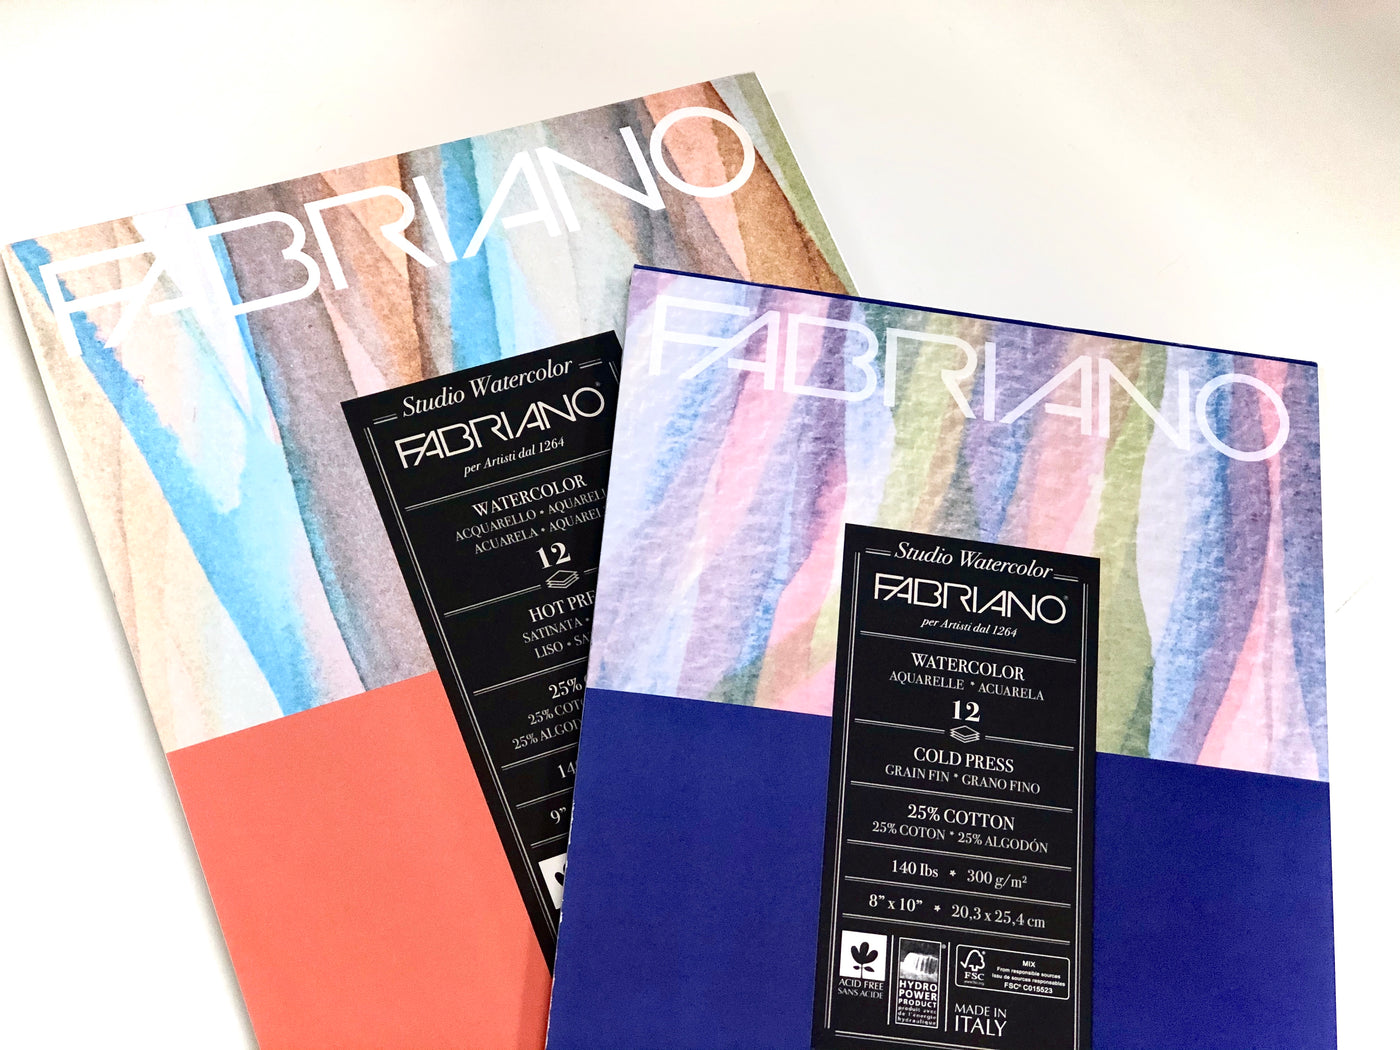 Fabriano Watercolor Pads